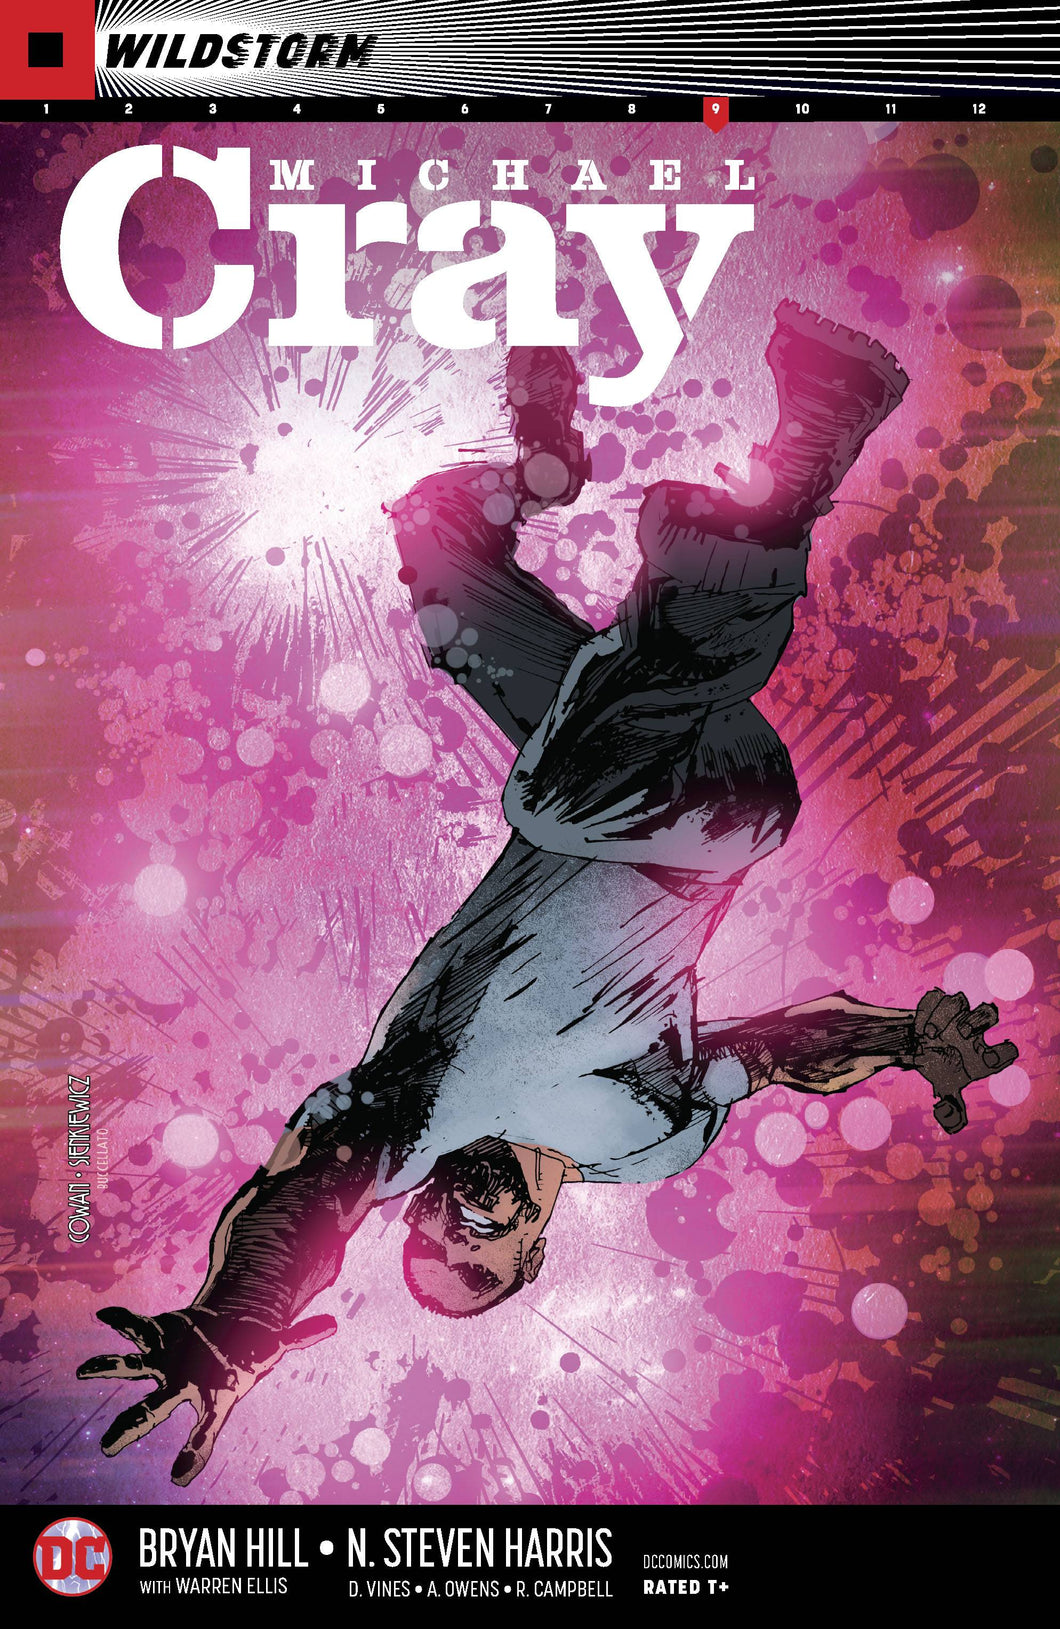 WILDSTORM MICHAEL CRAY #9 (07/11/2018)